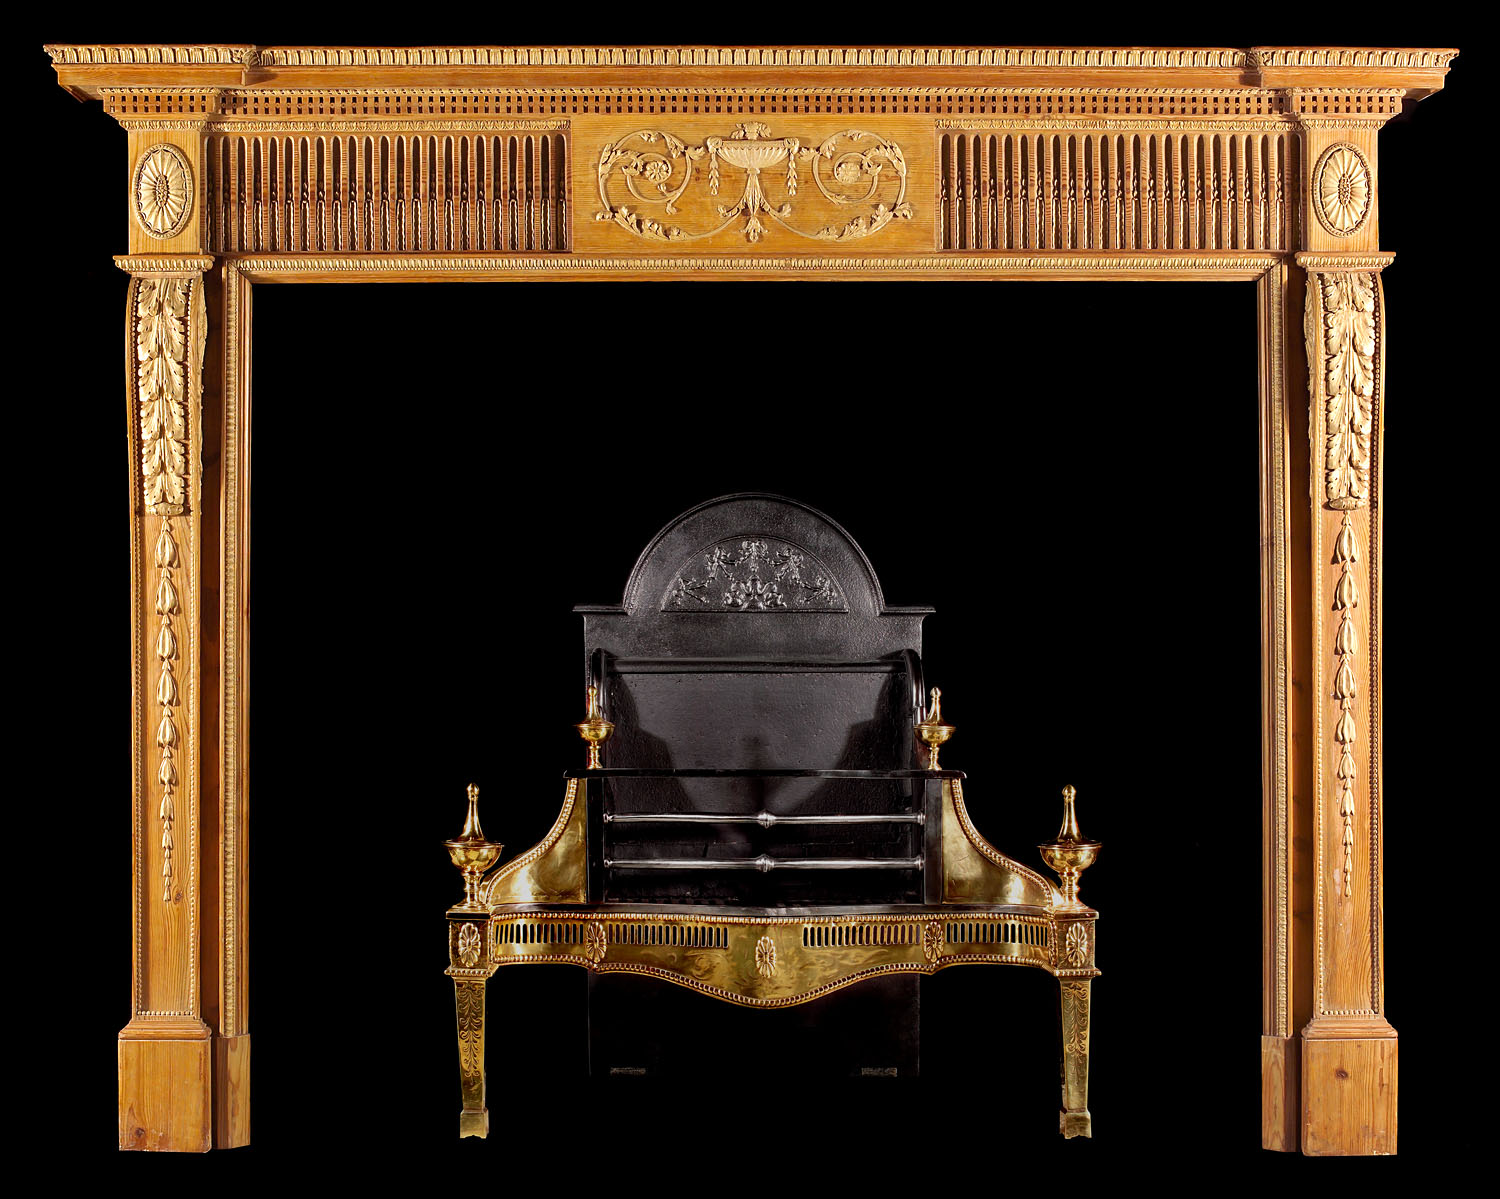 An Antique Pine Neo Classical style Chimneypiece Mantel